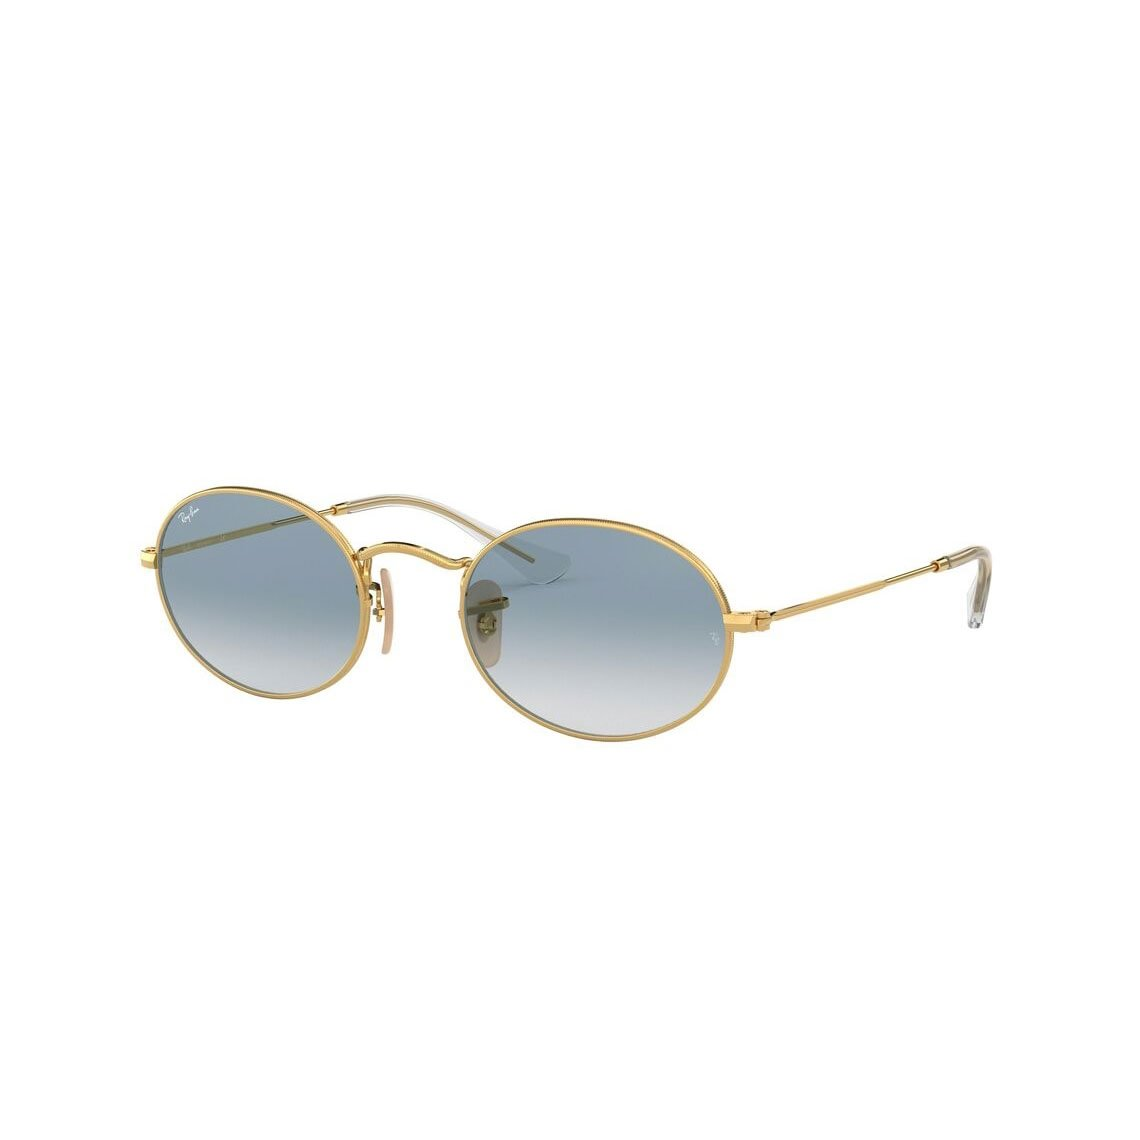 Ray-Ban Oval flat lenses RB3547N 001/3F 54